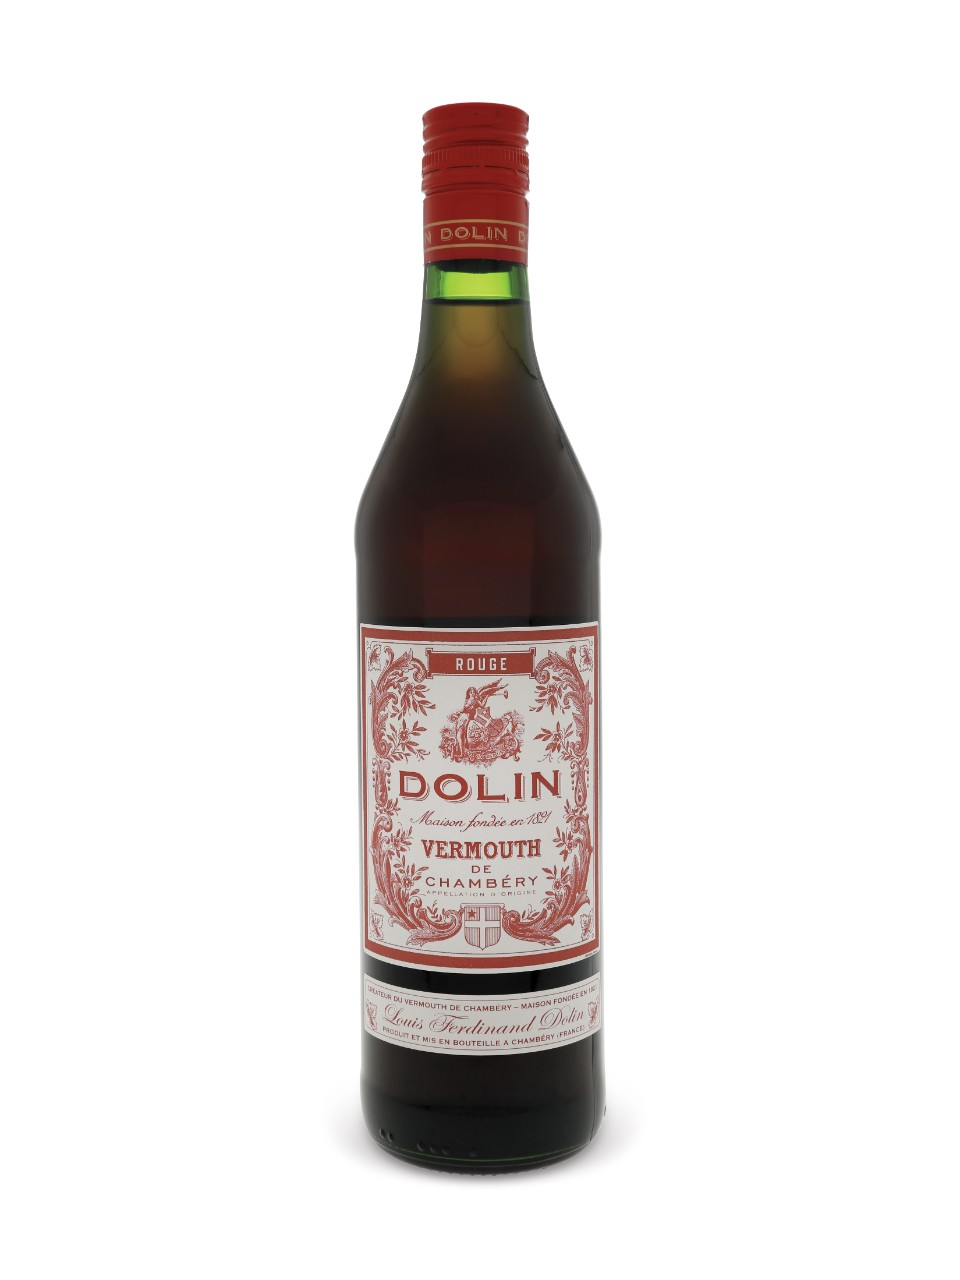 Dolin: An excellent red.